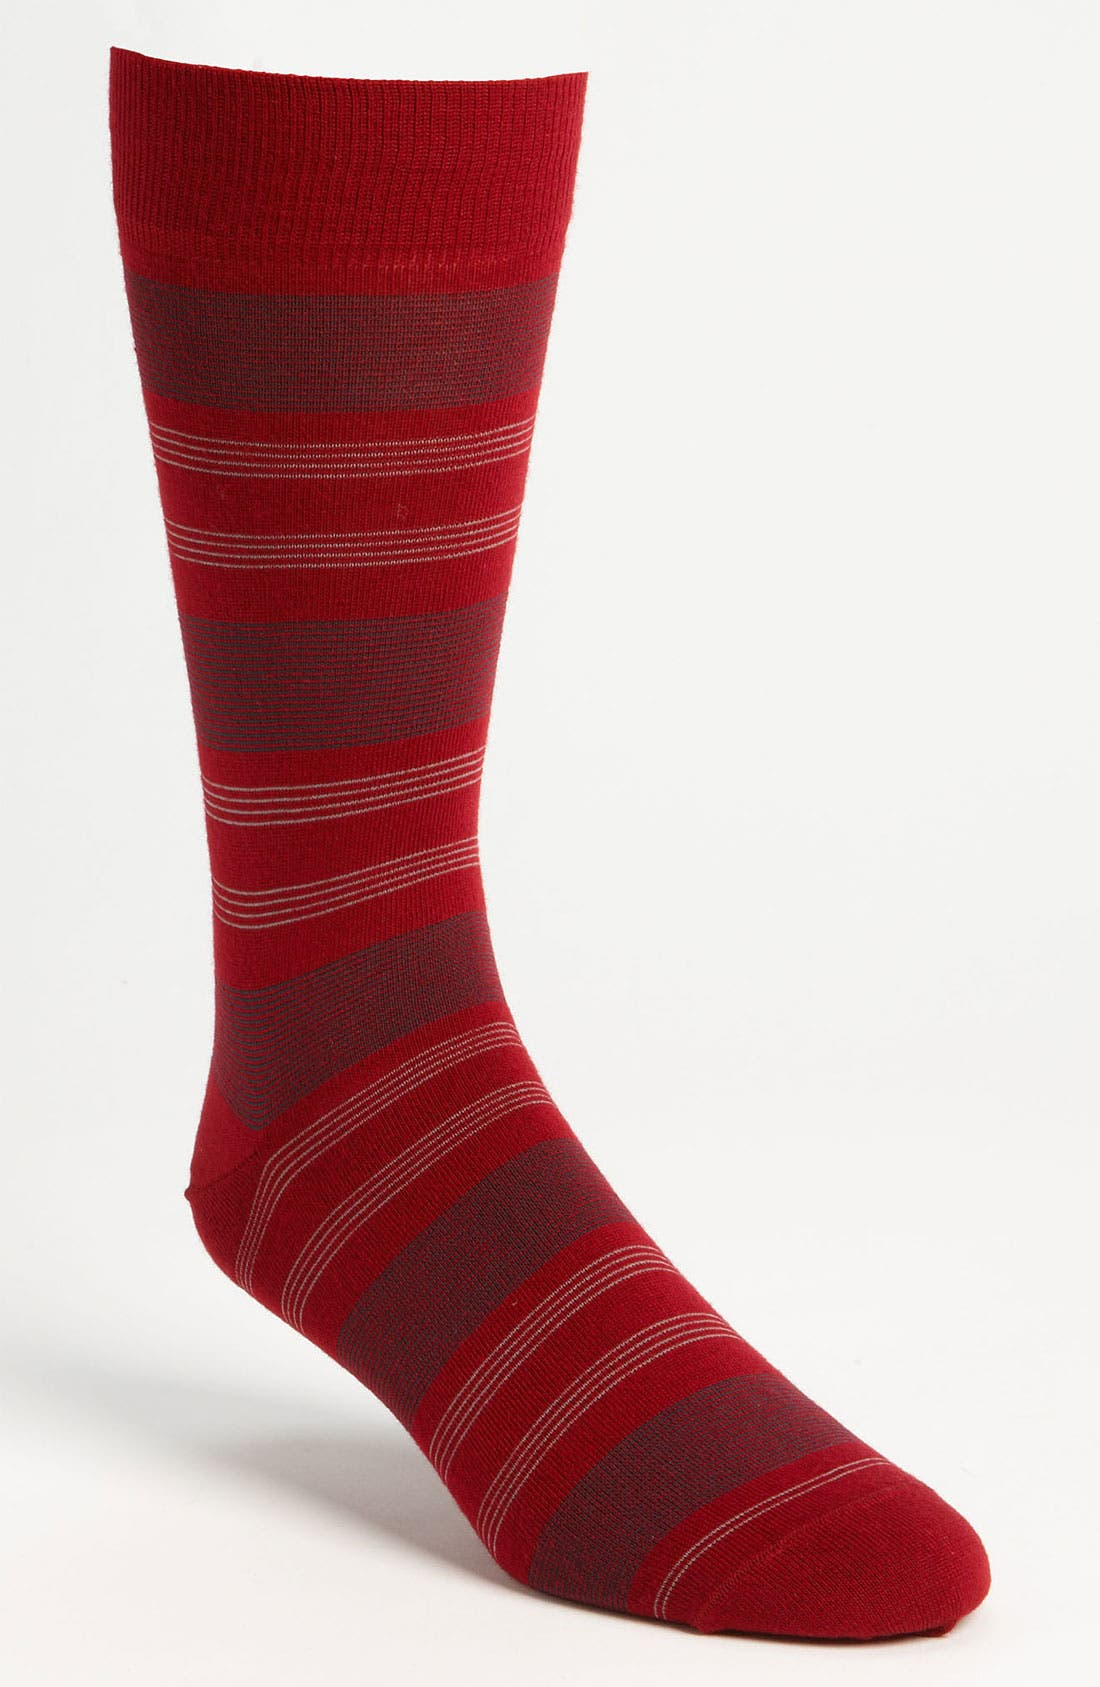 Main Image - Marcoliani 'Cuvio' Stripe Socks